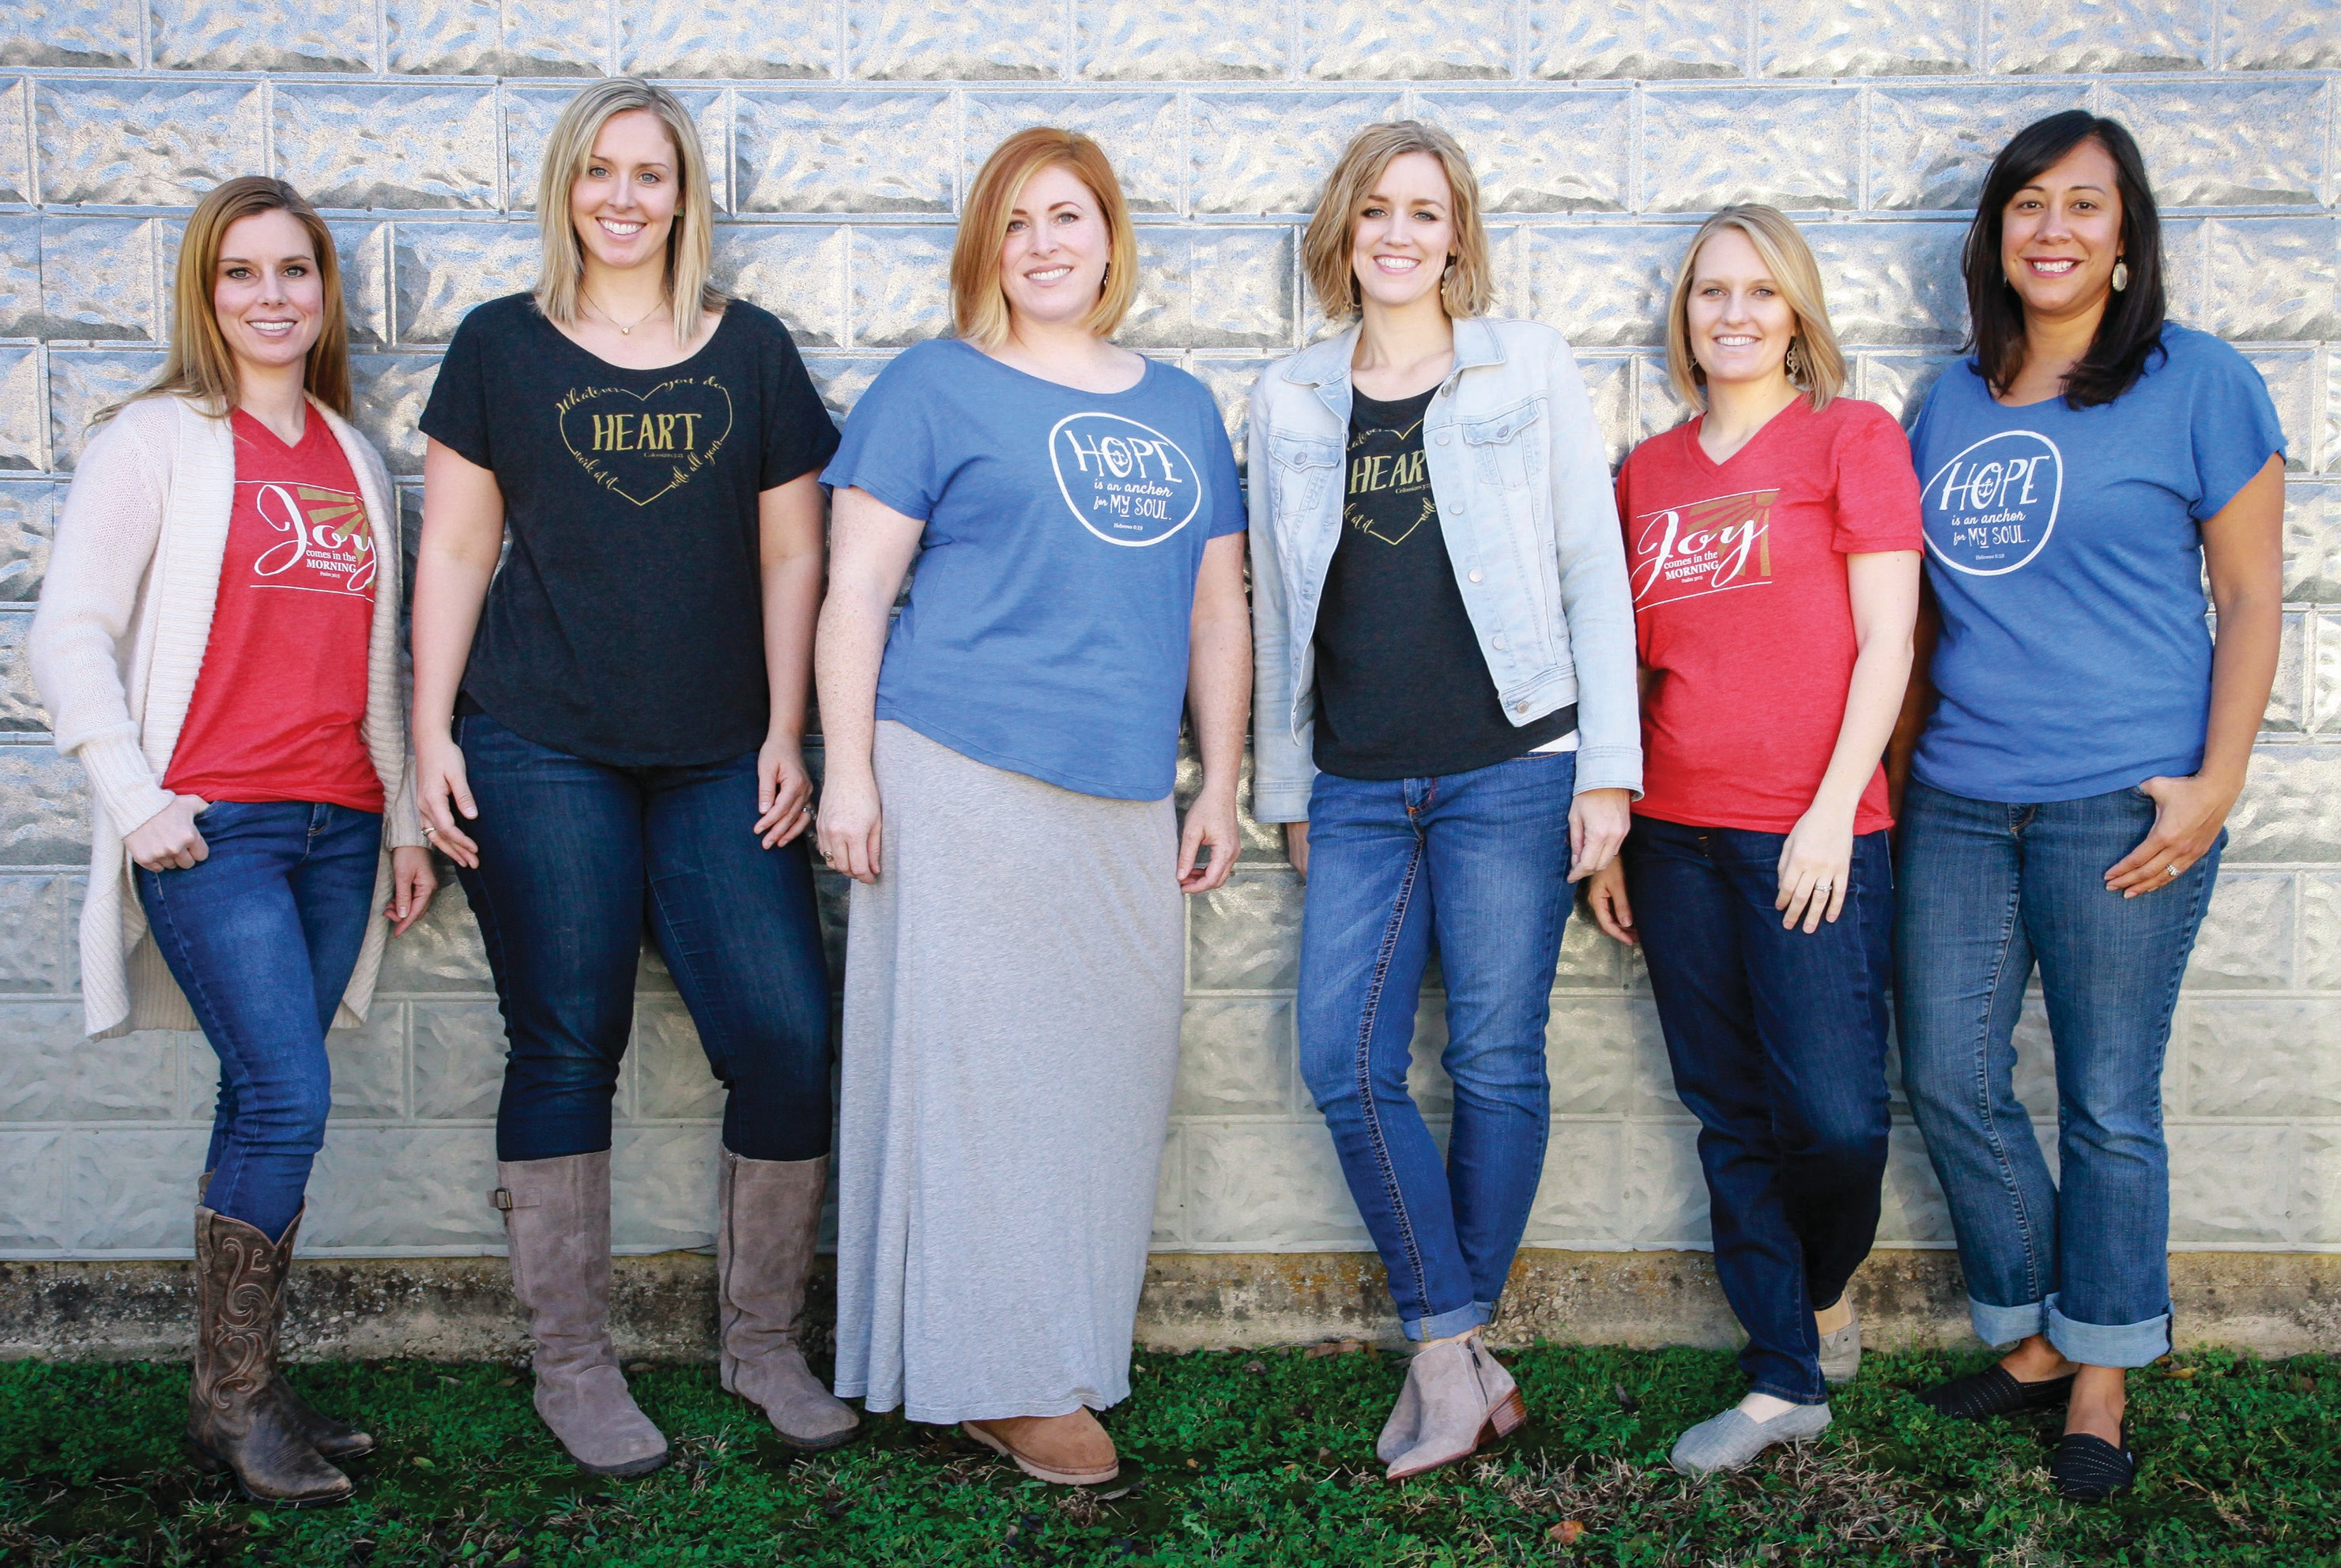 Heart Work Tees brings joy and laughter into women's daily service via T-shirts. Some of the T-shirts are silly, and some are encouraging.